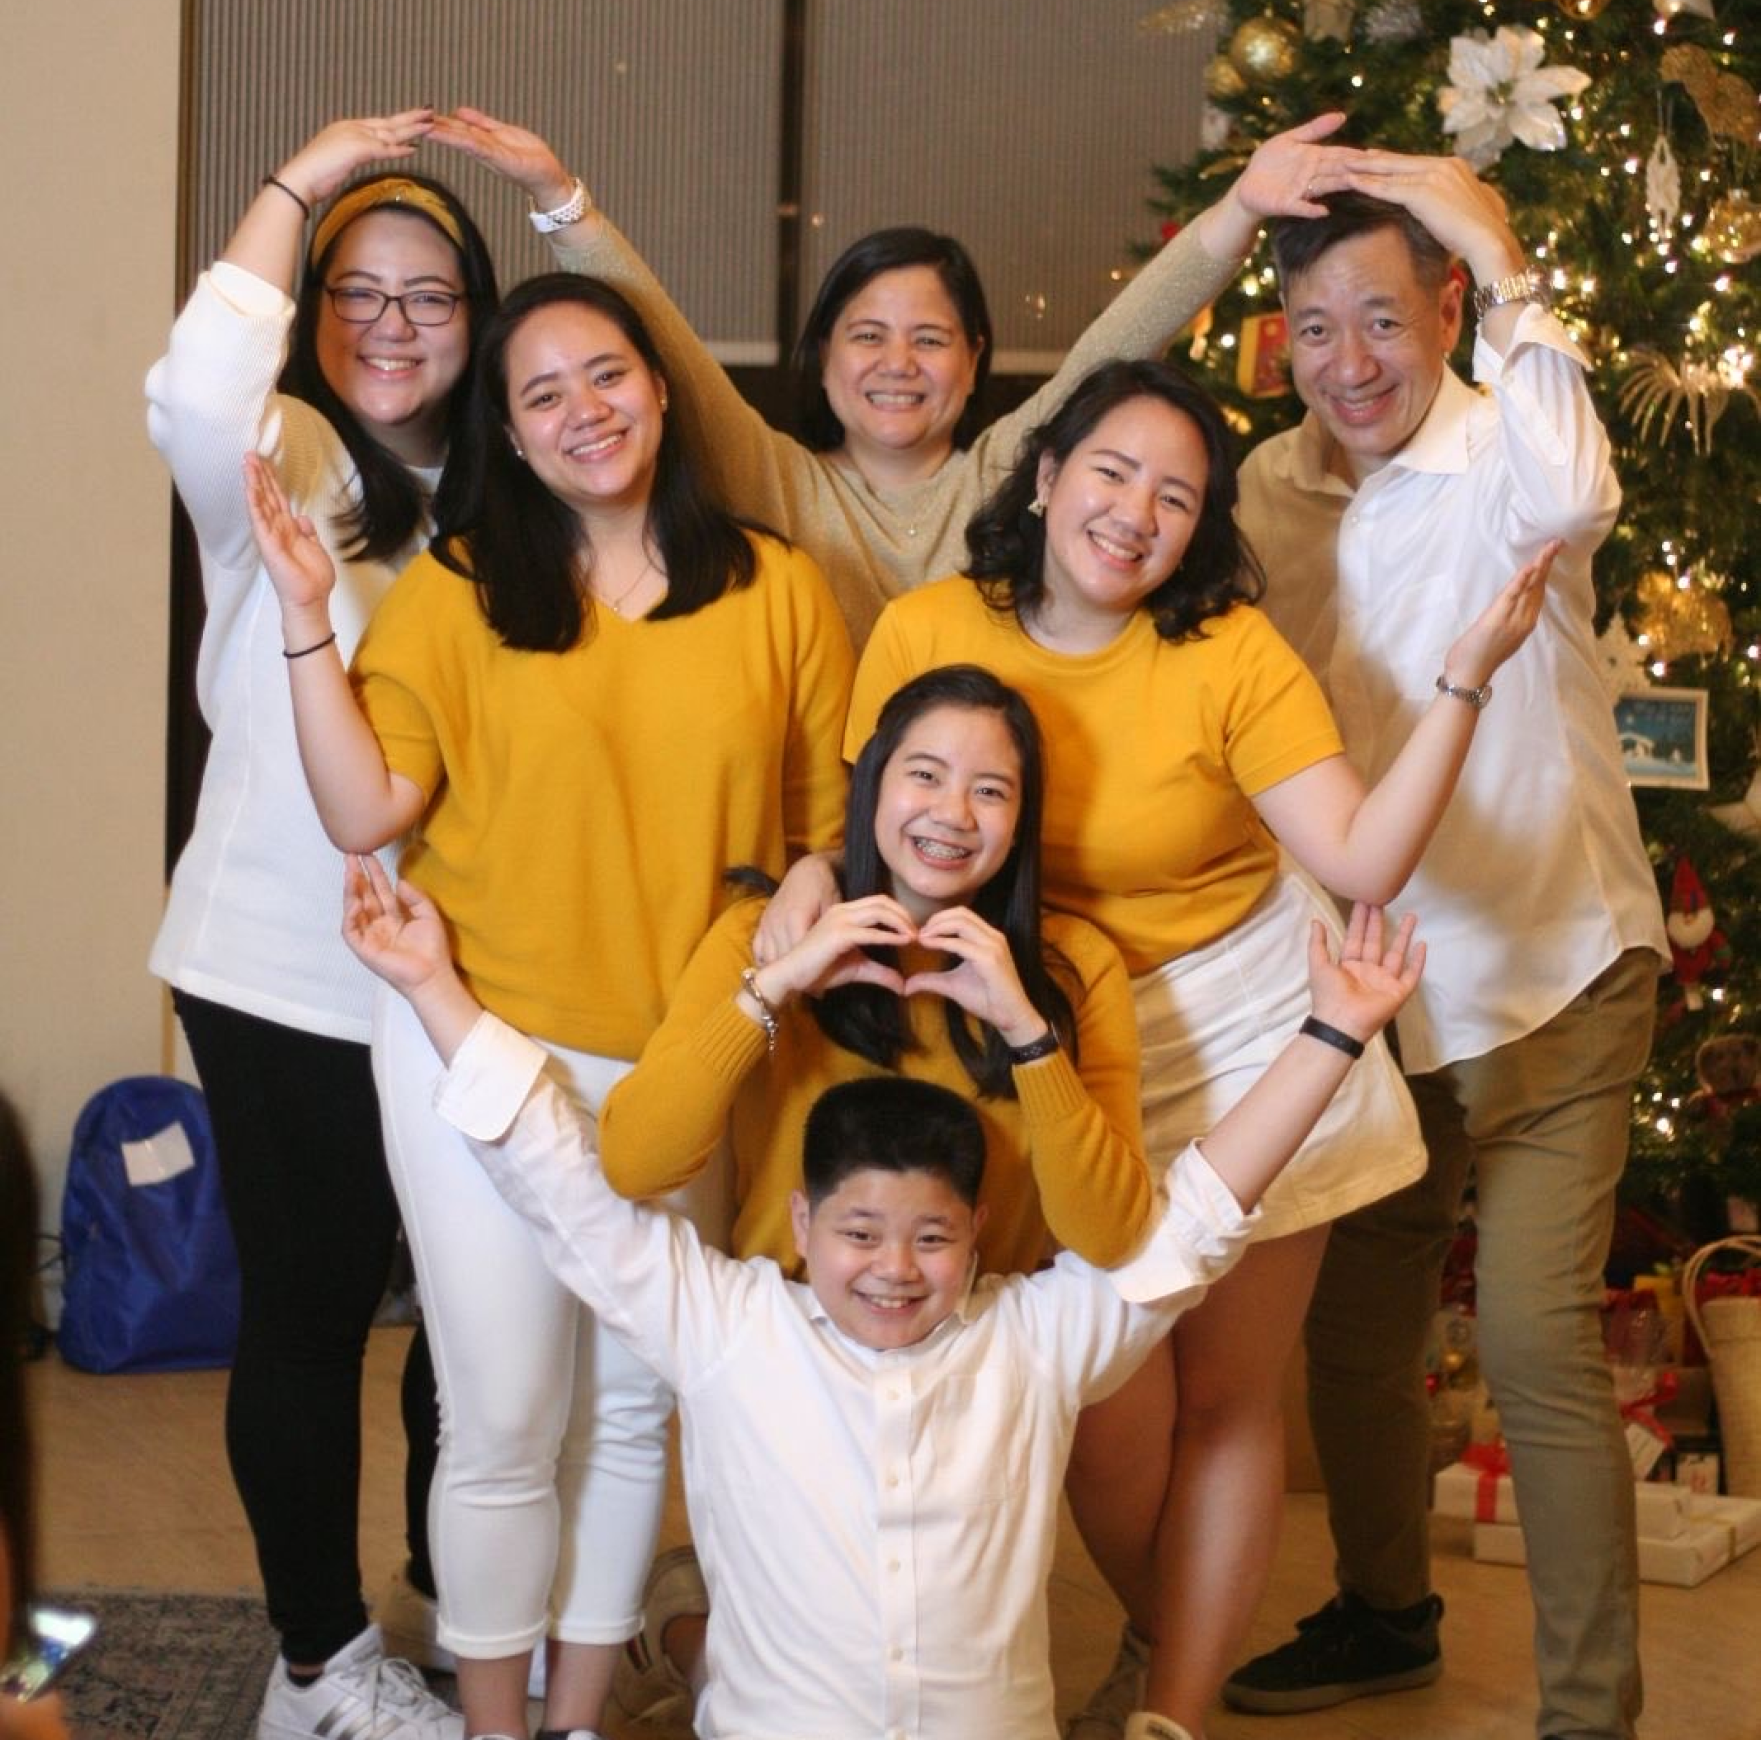 A family of 7 forms a heart shape while smiling